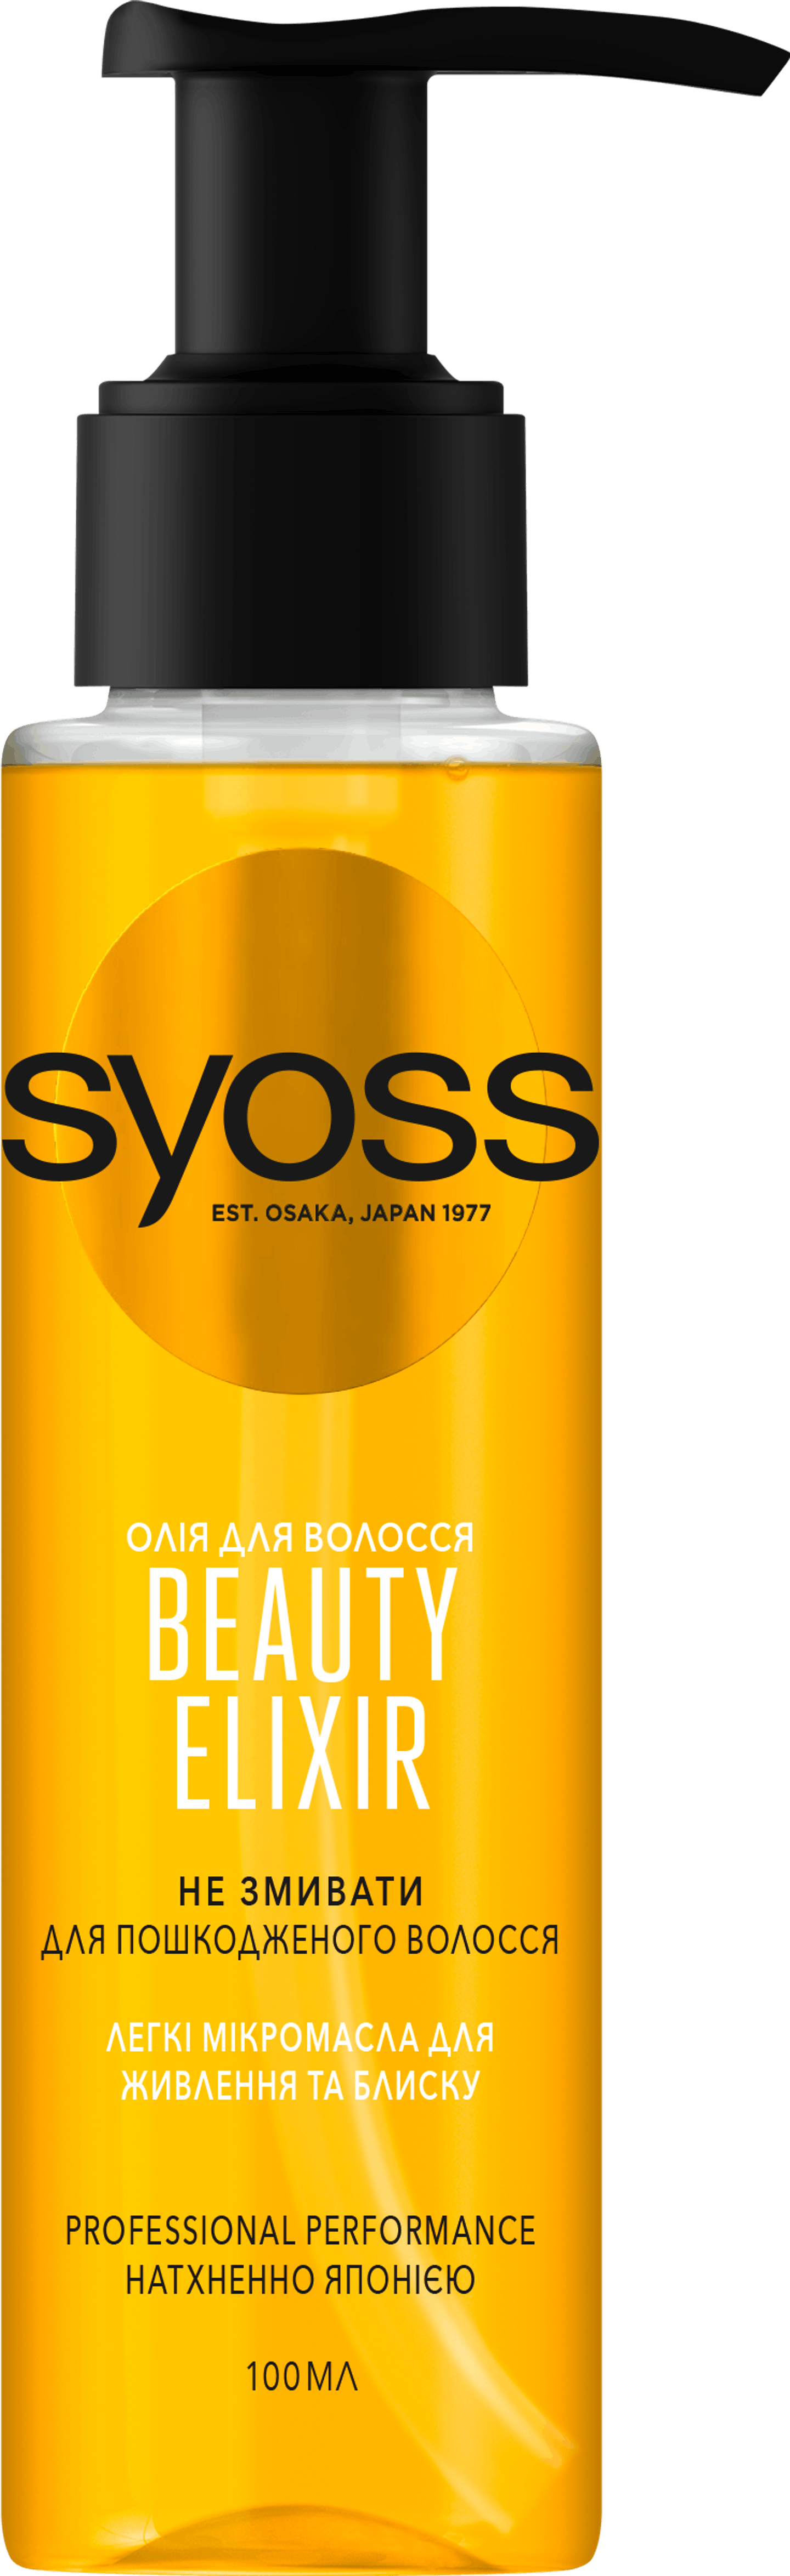 Syoss Beauty Elixir Олія